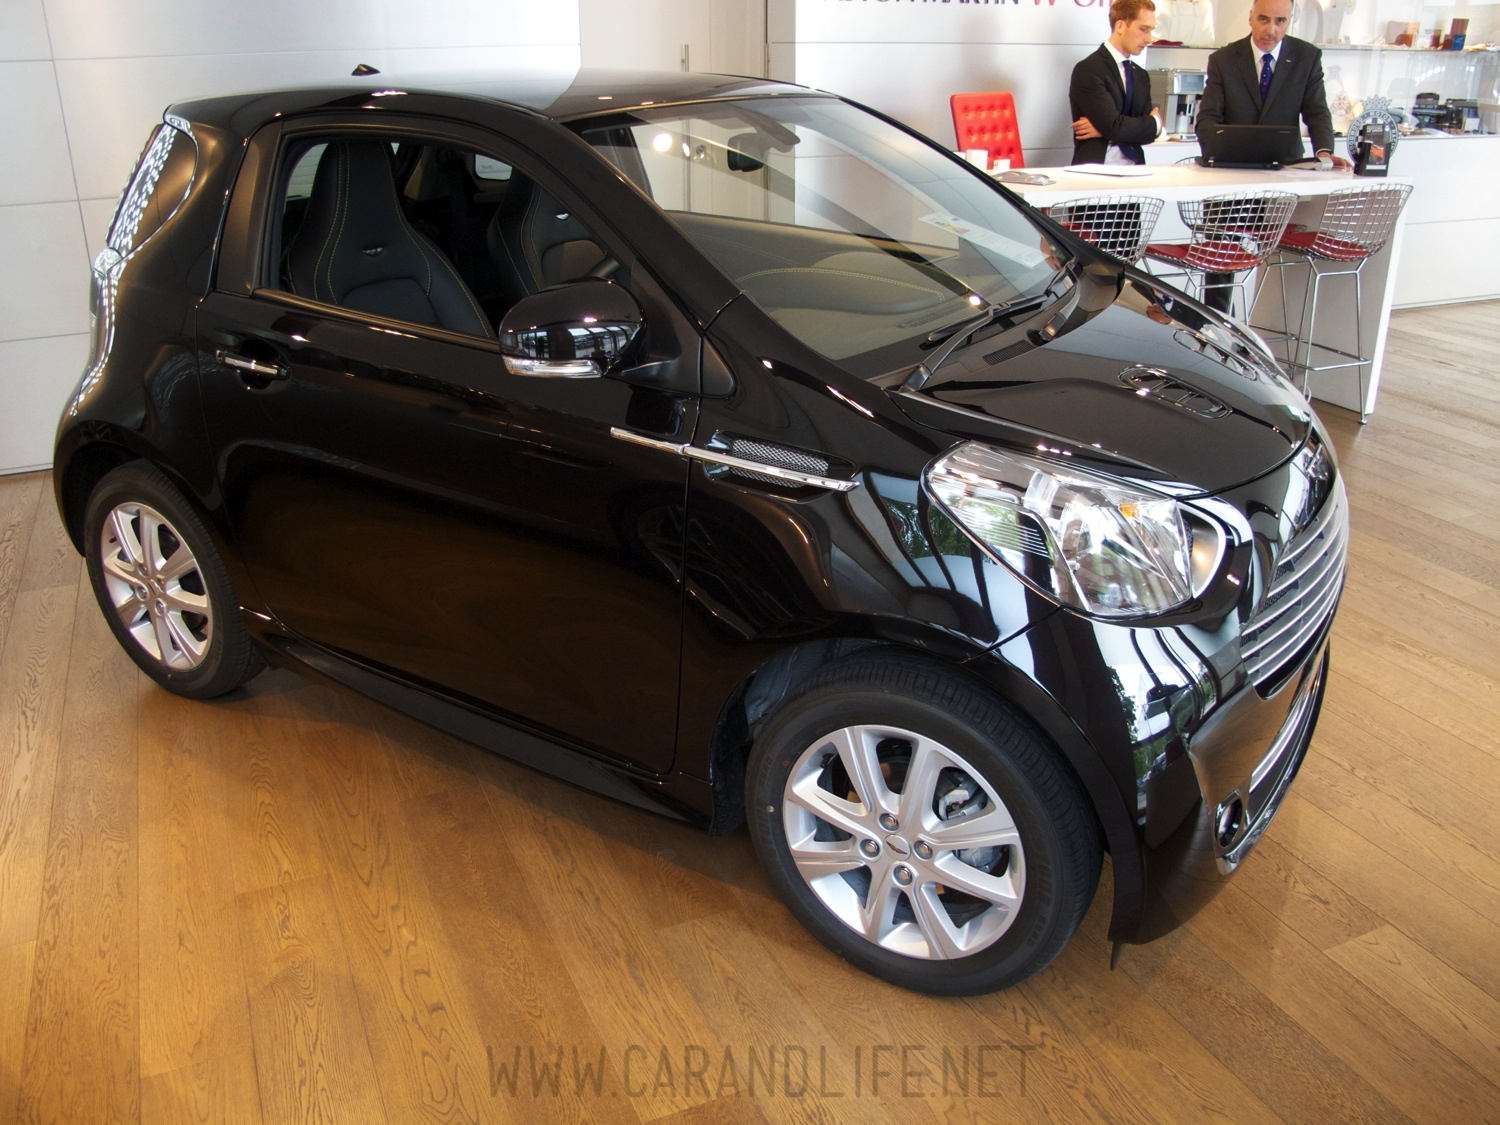 Aston Martin Cygnet For Pinitforwarduk Cars Life Cars Fashion